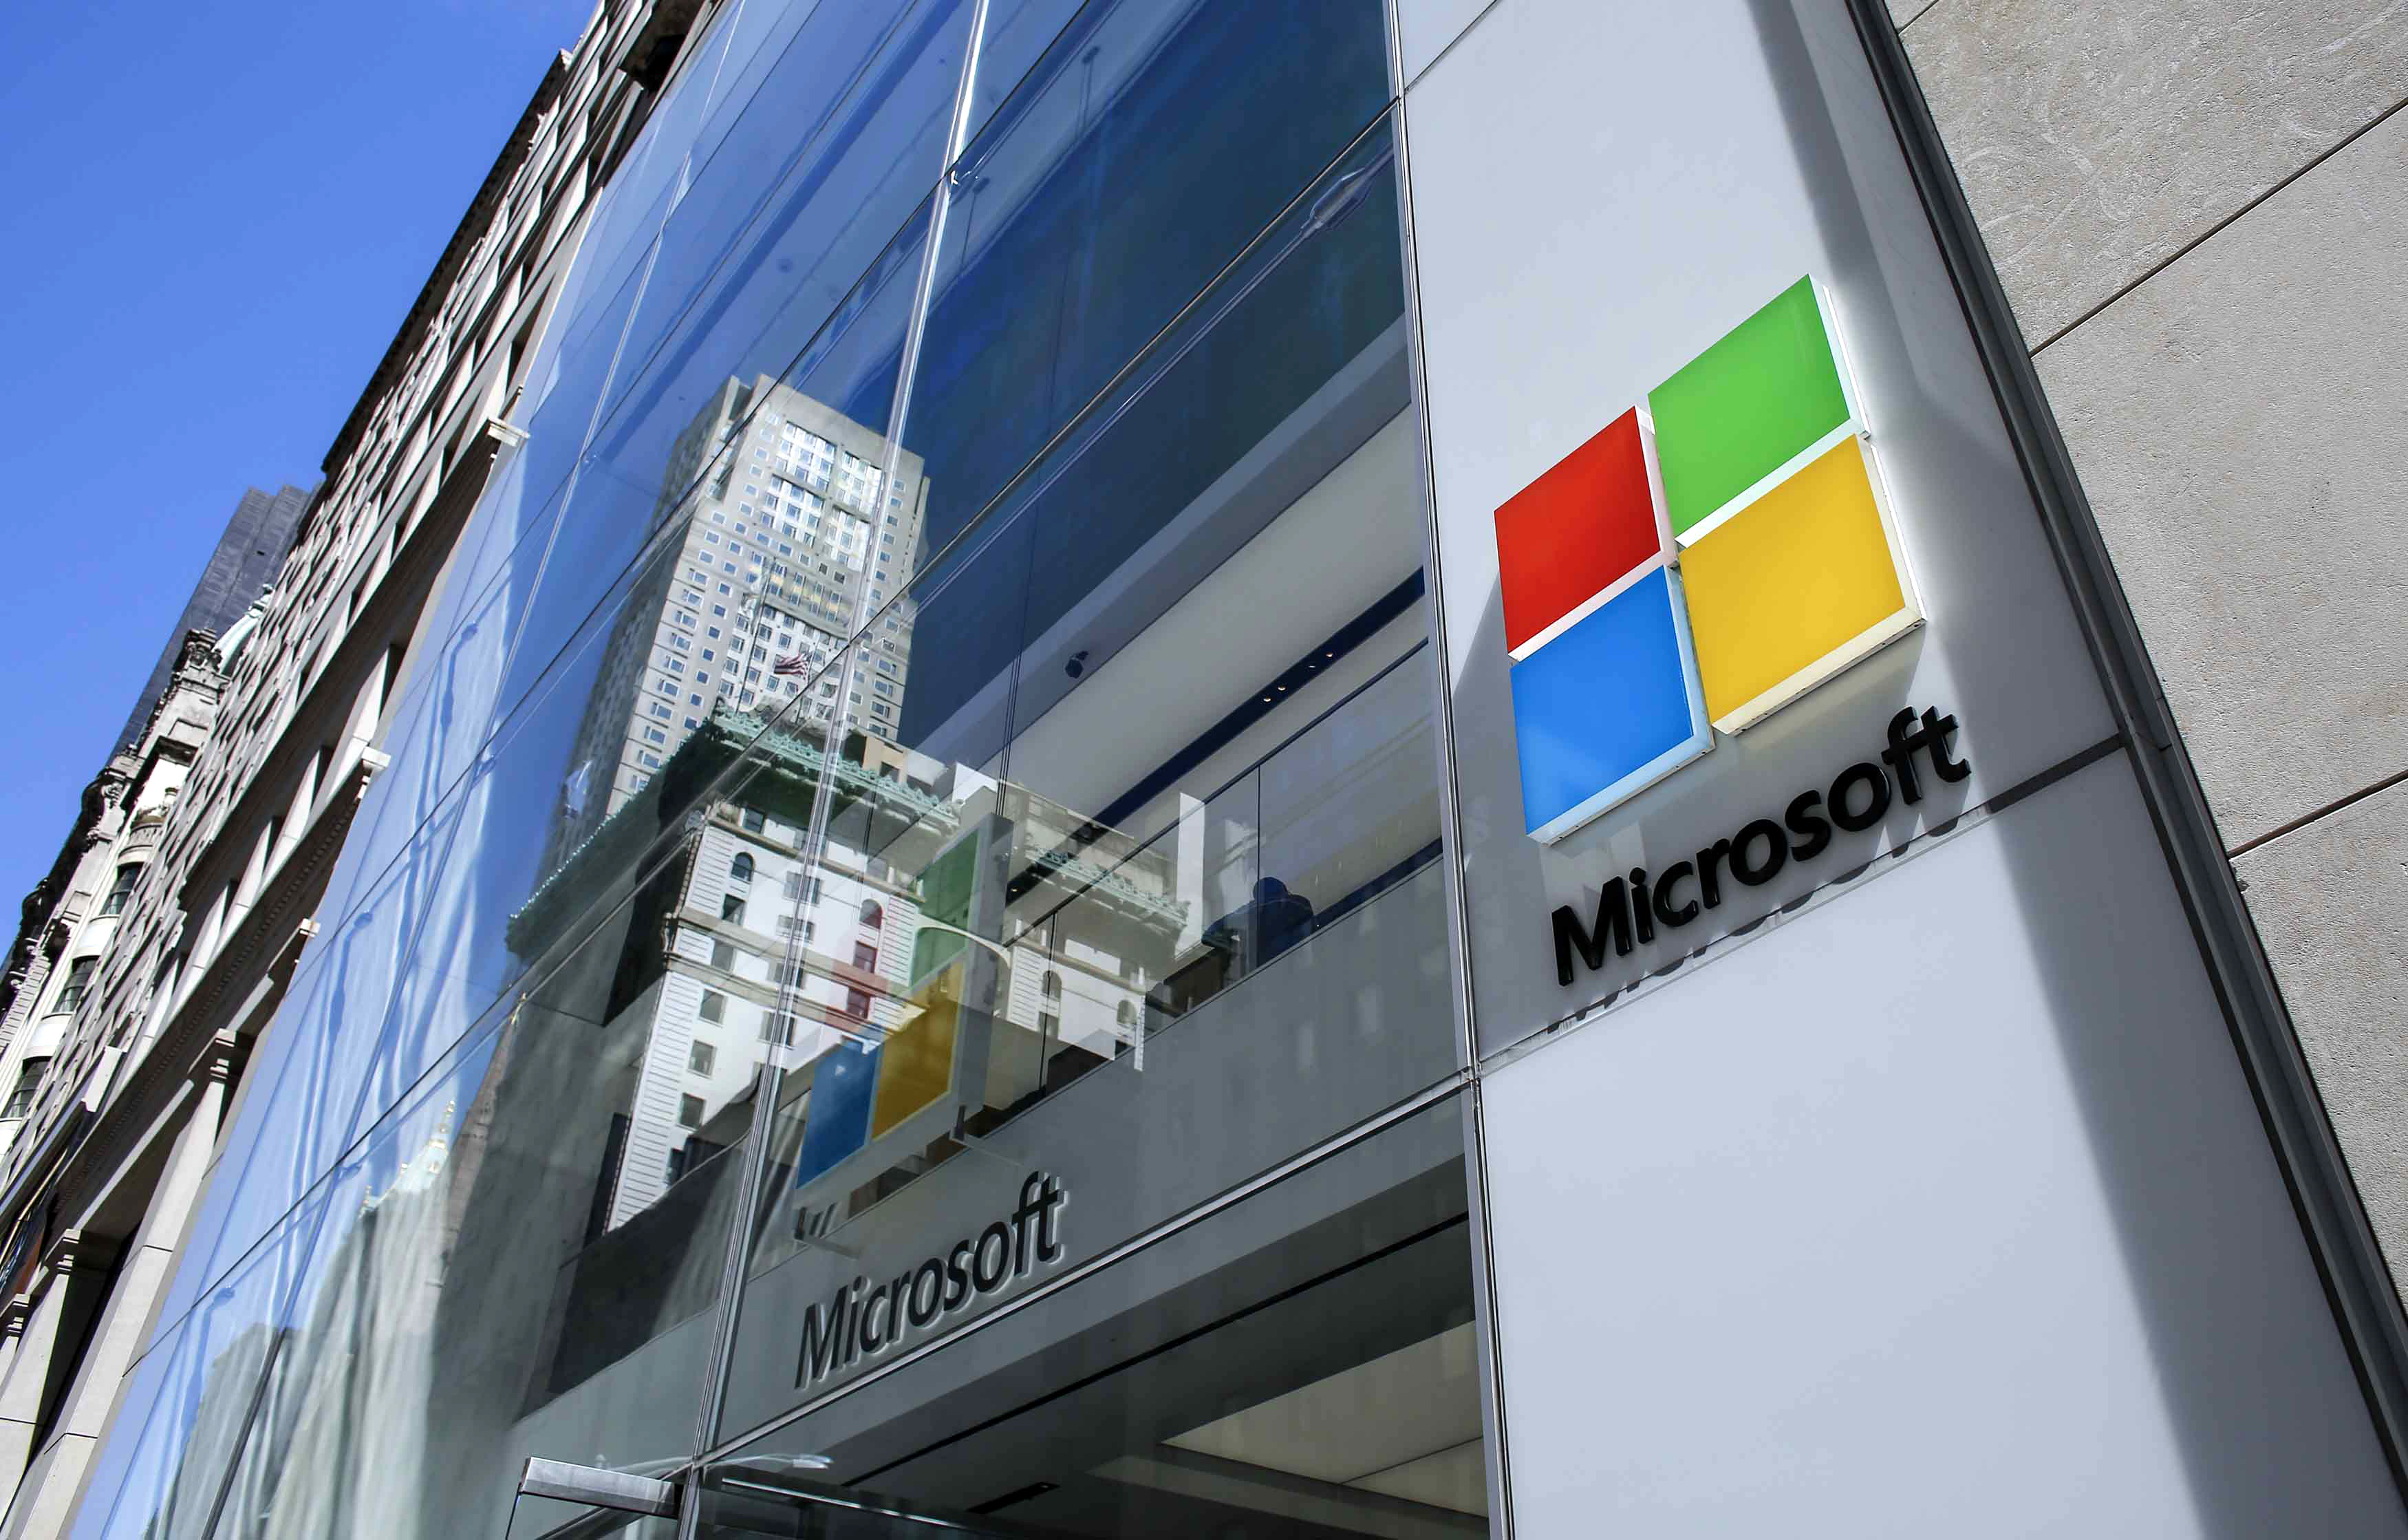 The exterior of a building with the Microsoft logo on it